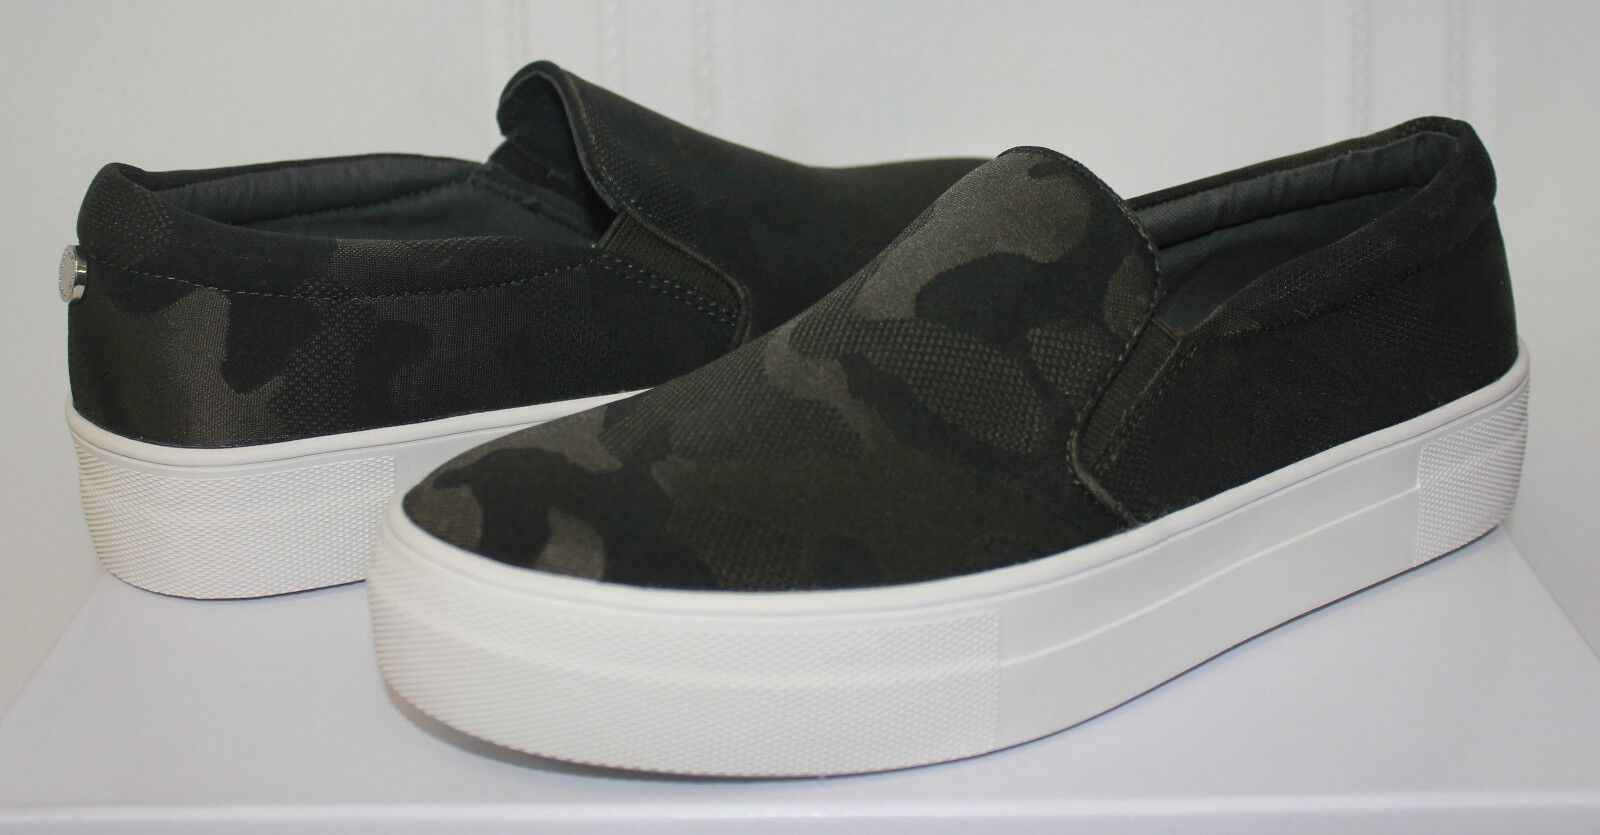 Steve Madden Gills Slip On Sneaker style shoes Camo fabric Camouflage New